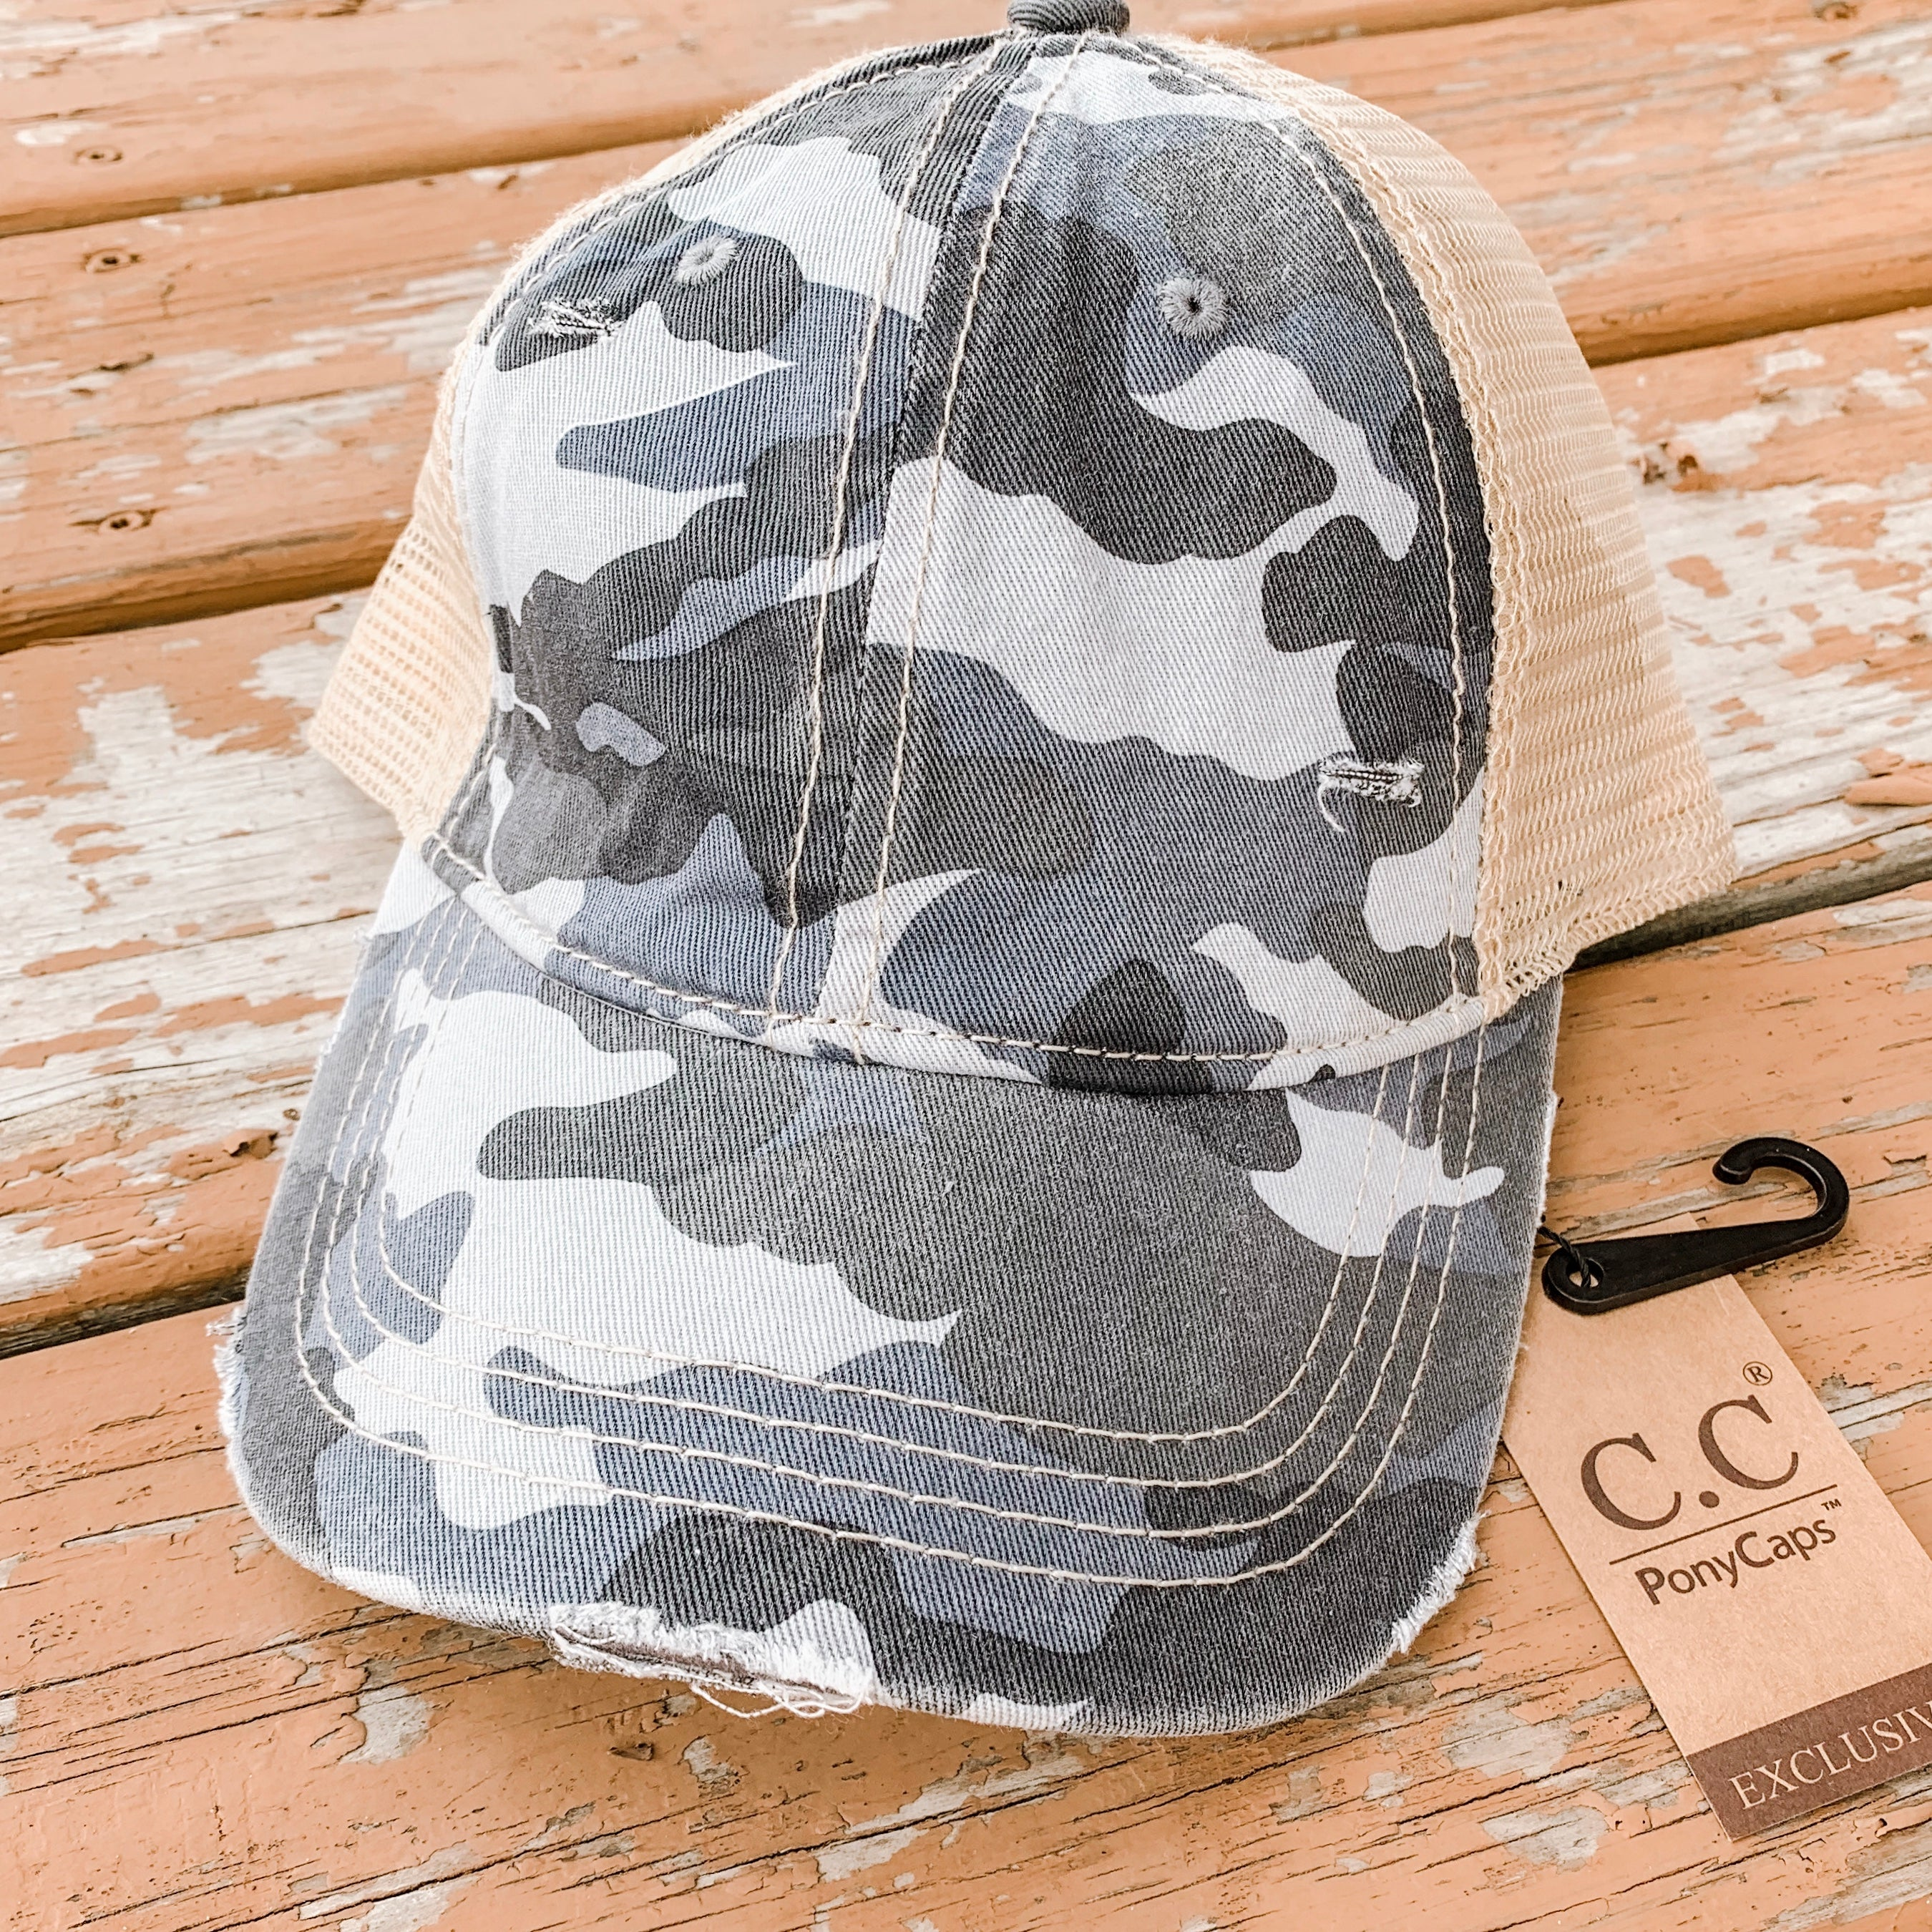 CC Camo Distressed Vintage Hat w/ Ponytail Hole